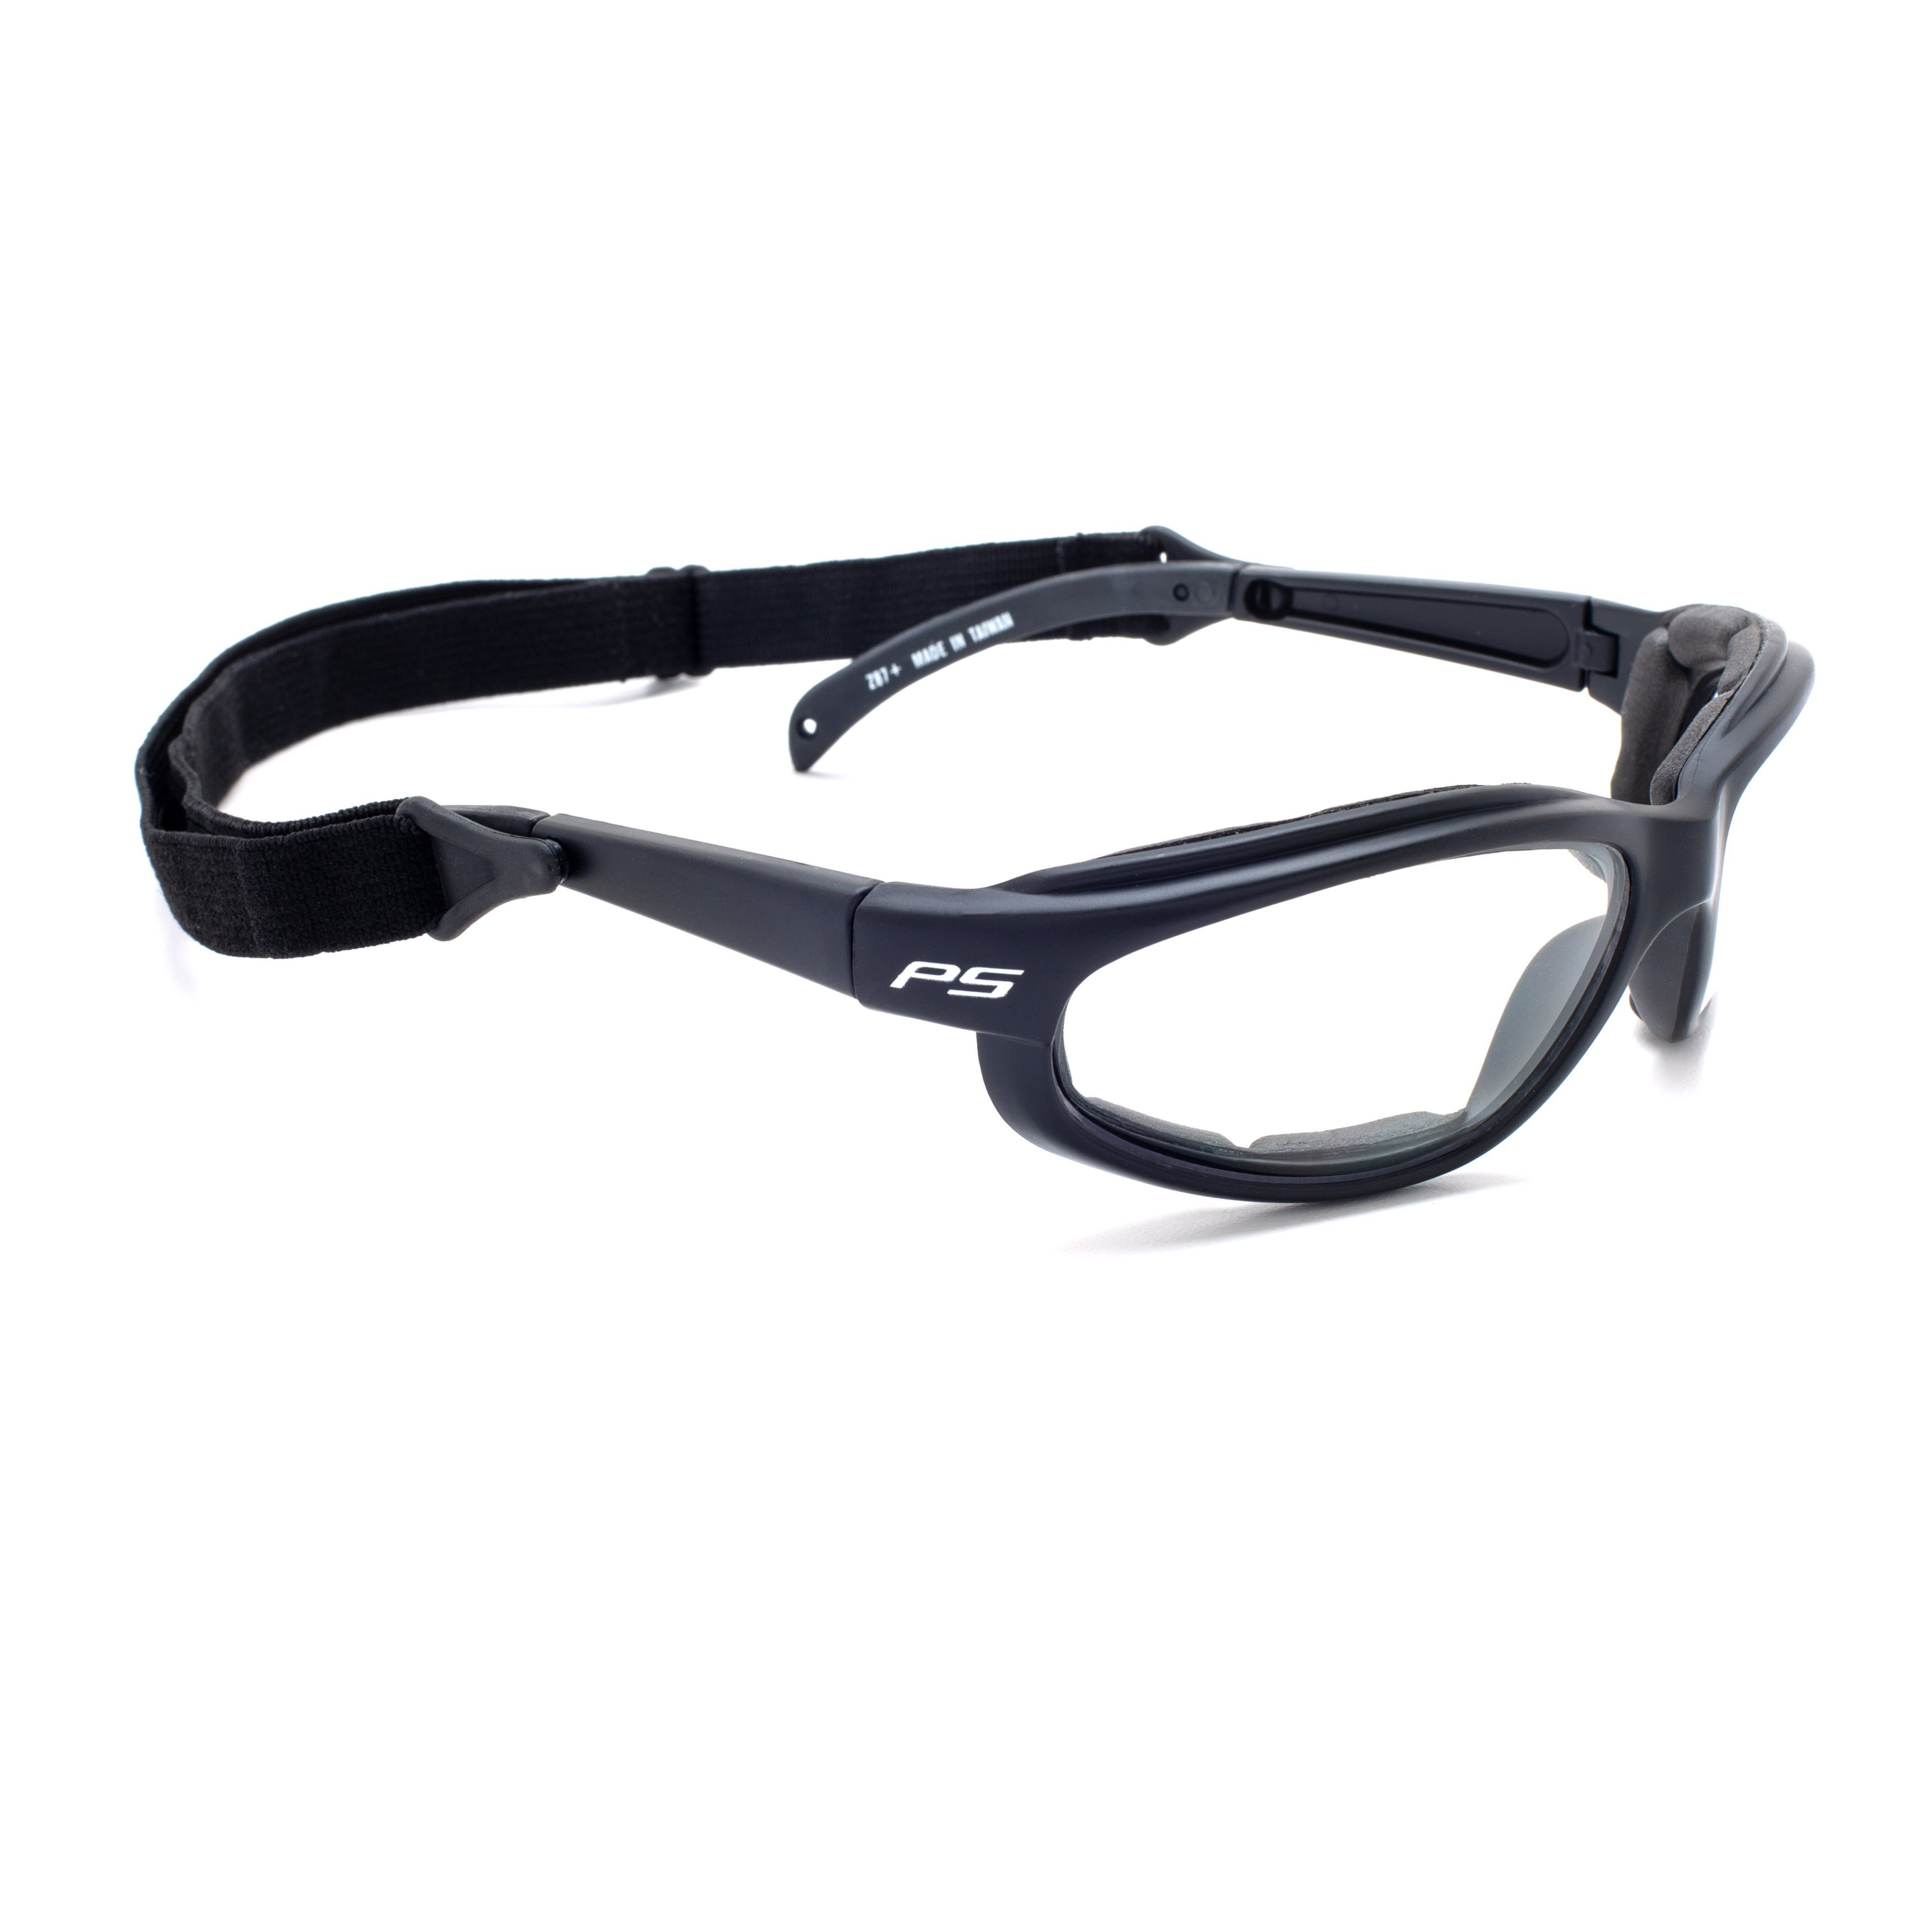 df9e31eef7f Buy Prescription Safety Glasses RX-901-B - Rx Safety